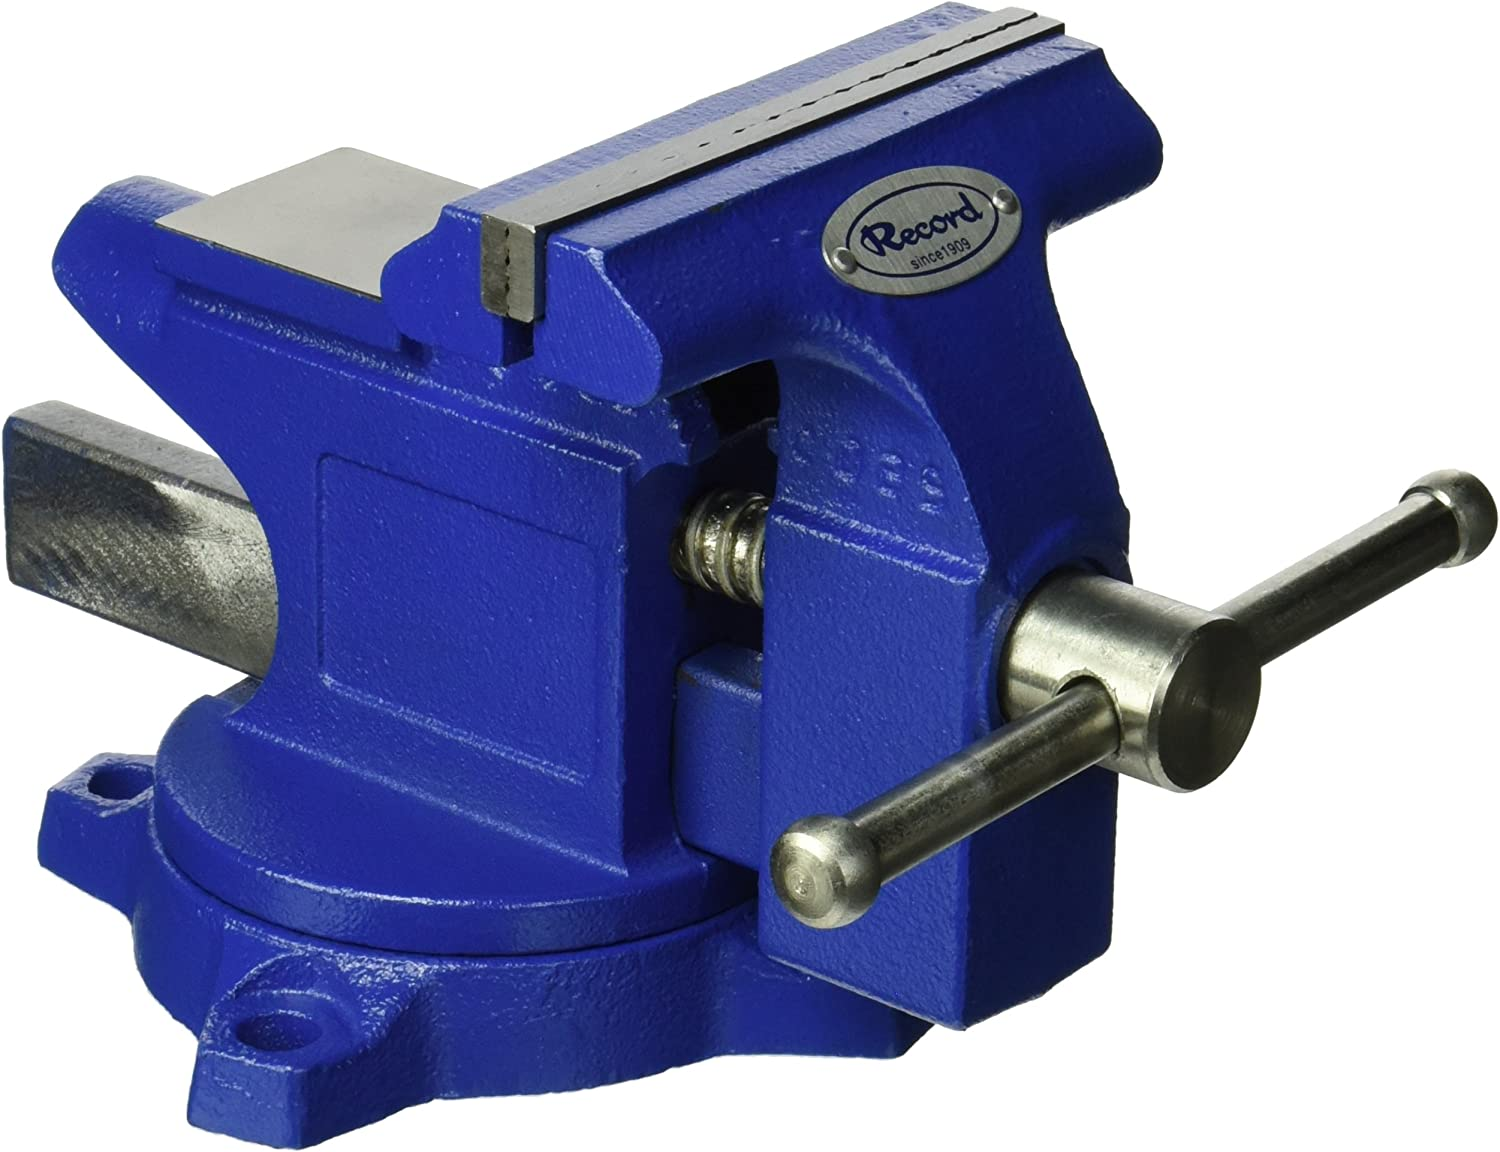 IRWIN ® Record ® REC52PD 52PD Plain vis Woodworking Vice 175 mm 7 in environ 17.78 cm /& Front chien